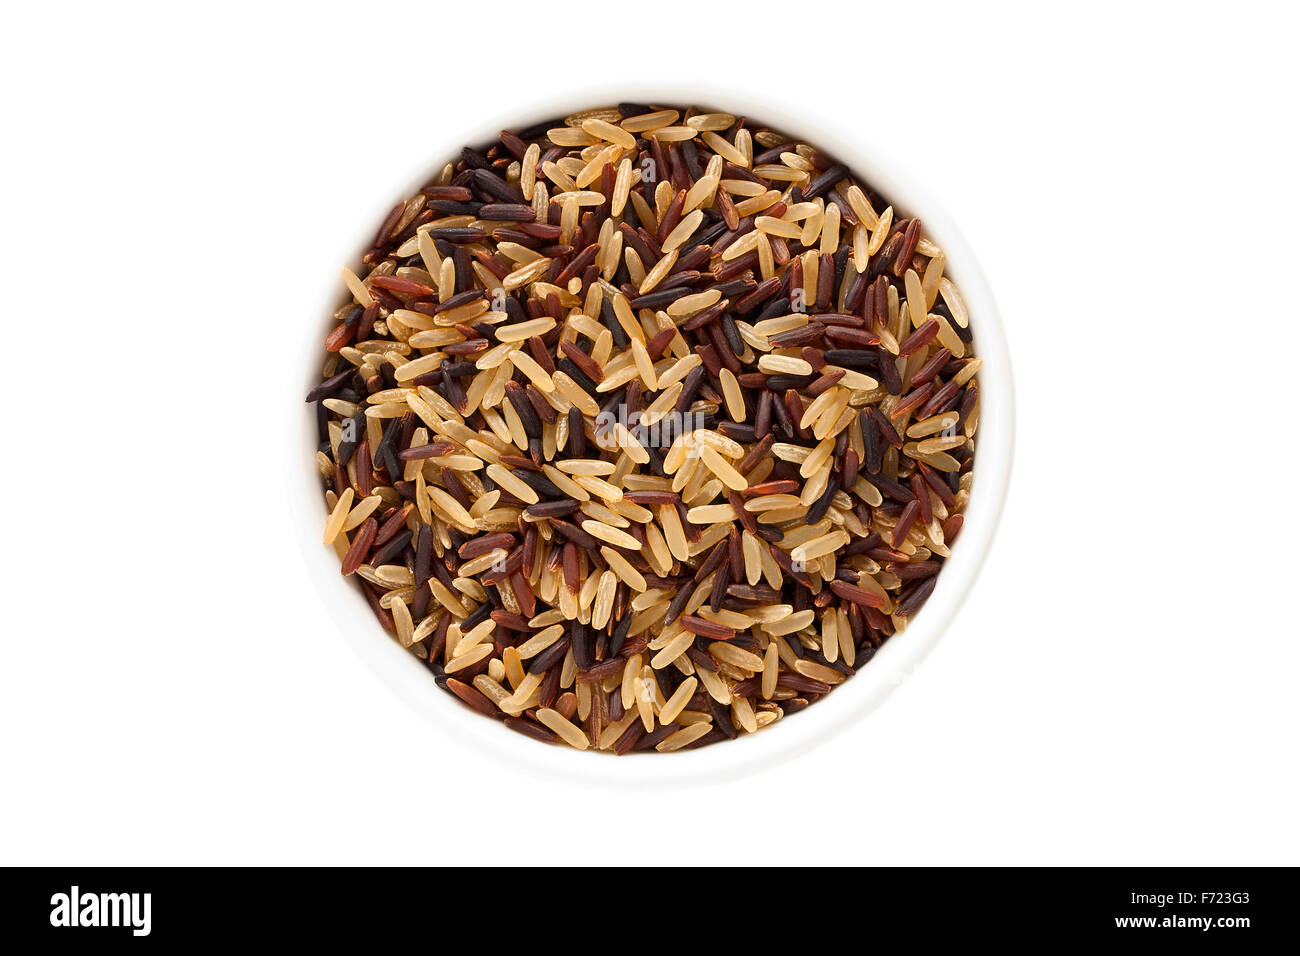 Wild rice mix in a cup isolated on a white background - Stock Image